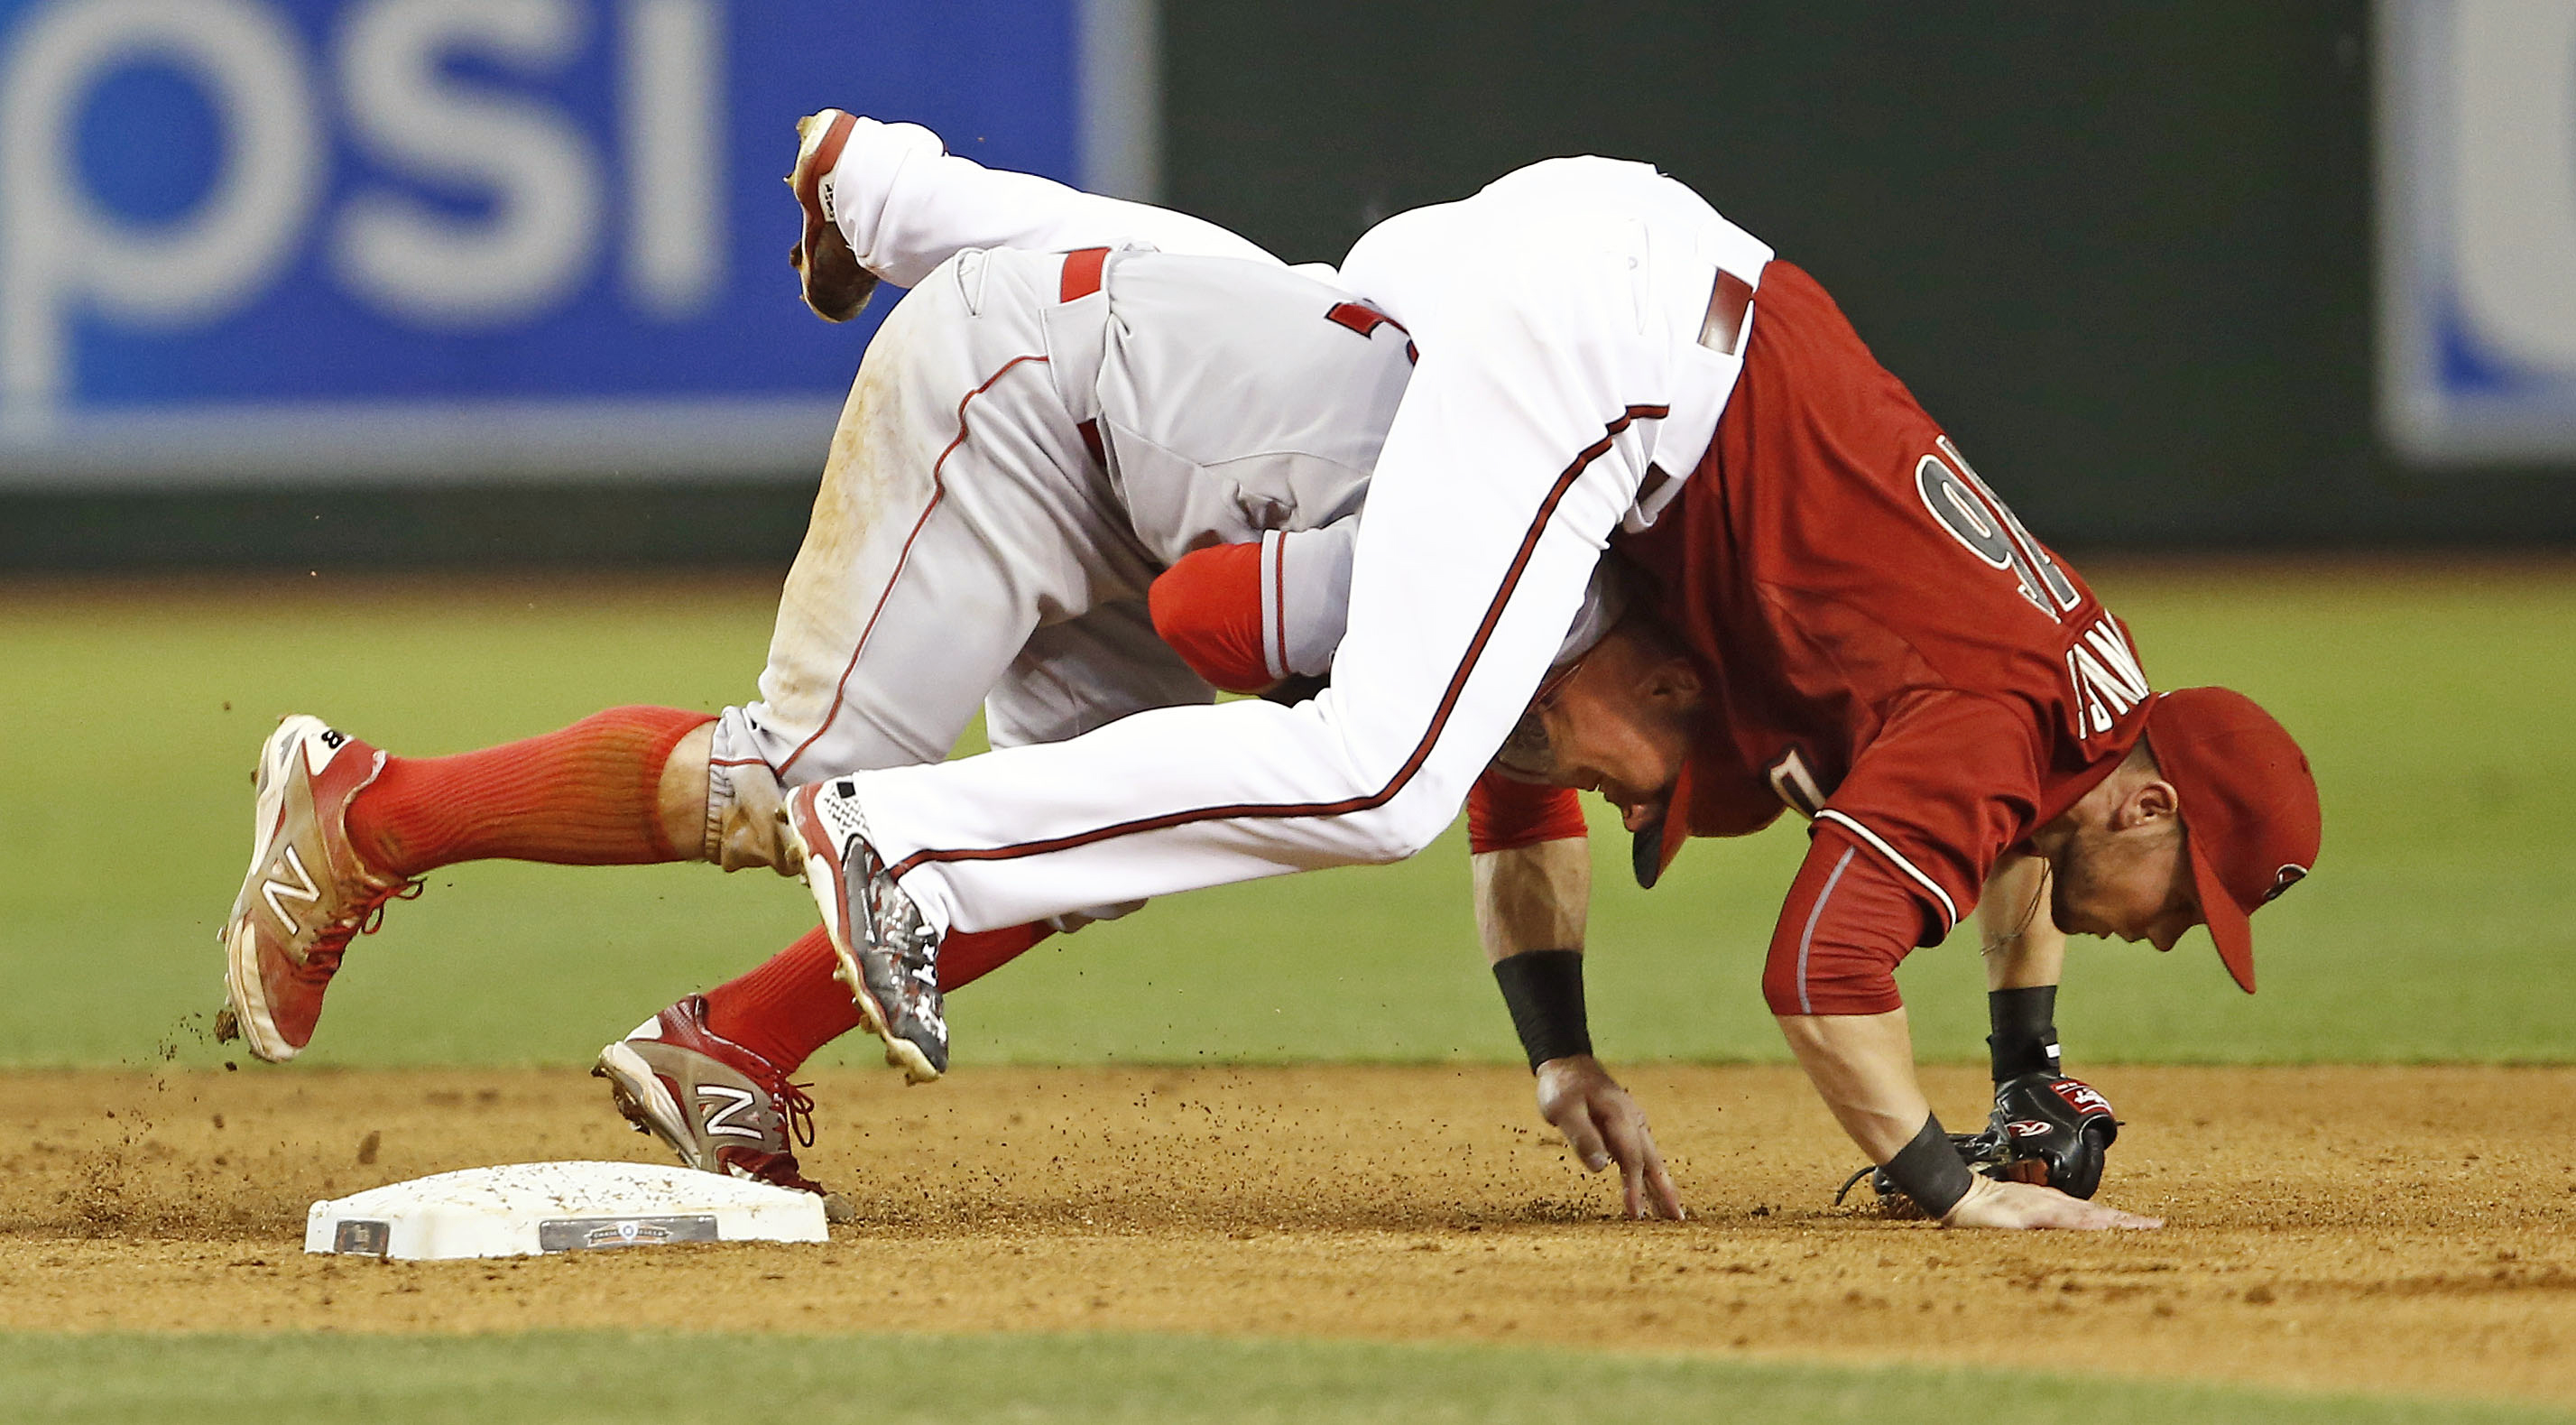 Arizona Diamondbacks' Chris Owings lands on top of Los Angeles Angels' Johnny Giavotella during a double play in the fifth inning of a baseball game in Phoenix,  Wednesday, June 17, 2015. (Rob Schumacher/The Arizona Republic via AP)  MARICOPA COUNTY OUT;